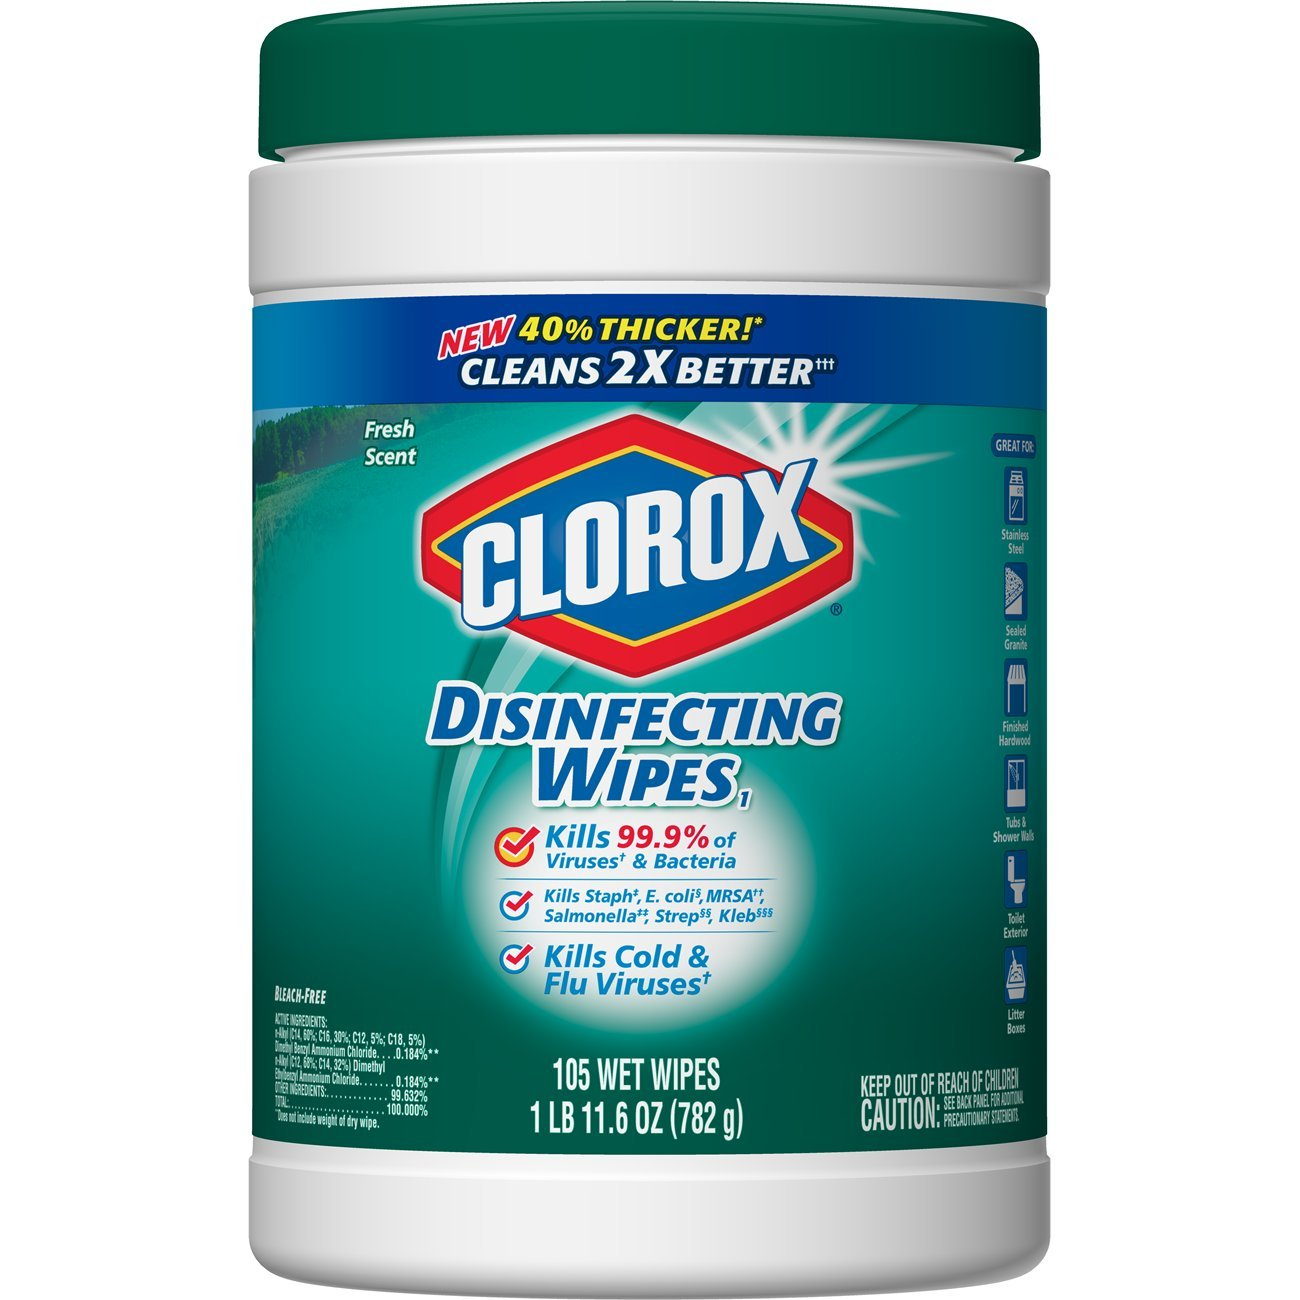 Clorox Disinfecting Wipes, Fresh Scent - 4 Pack - 105 Each (Packaging May Vary)